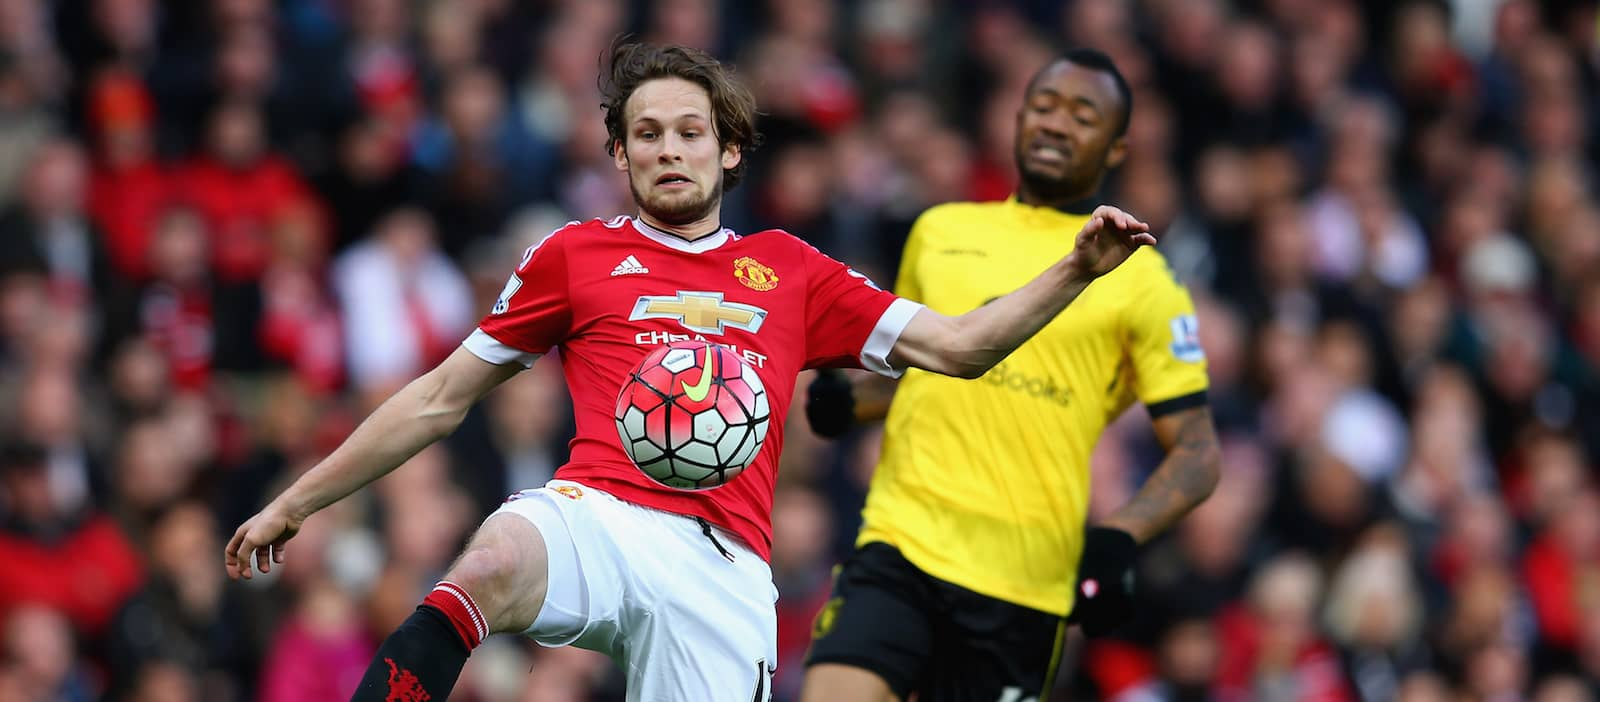 Daley Blind classy up against a poor Aston Villa side in 1-0 win